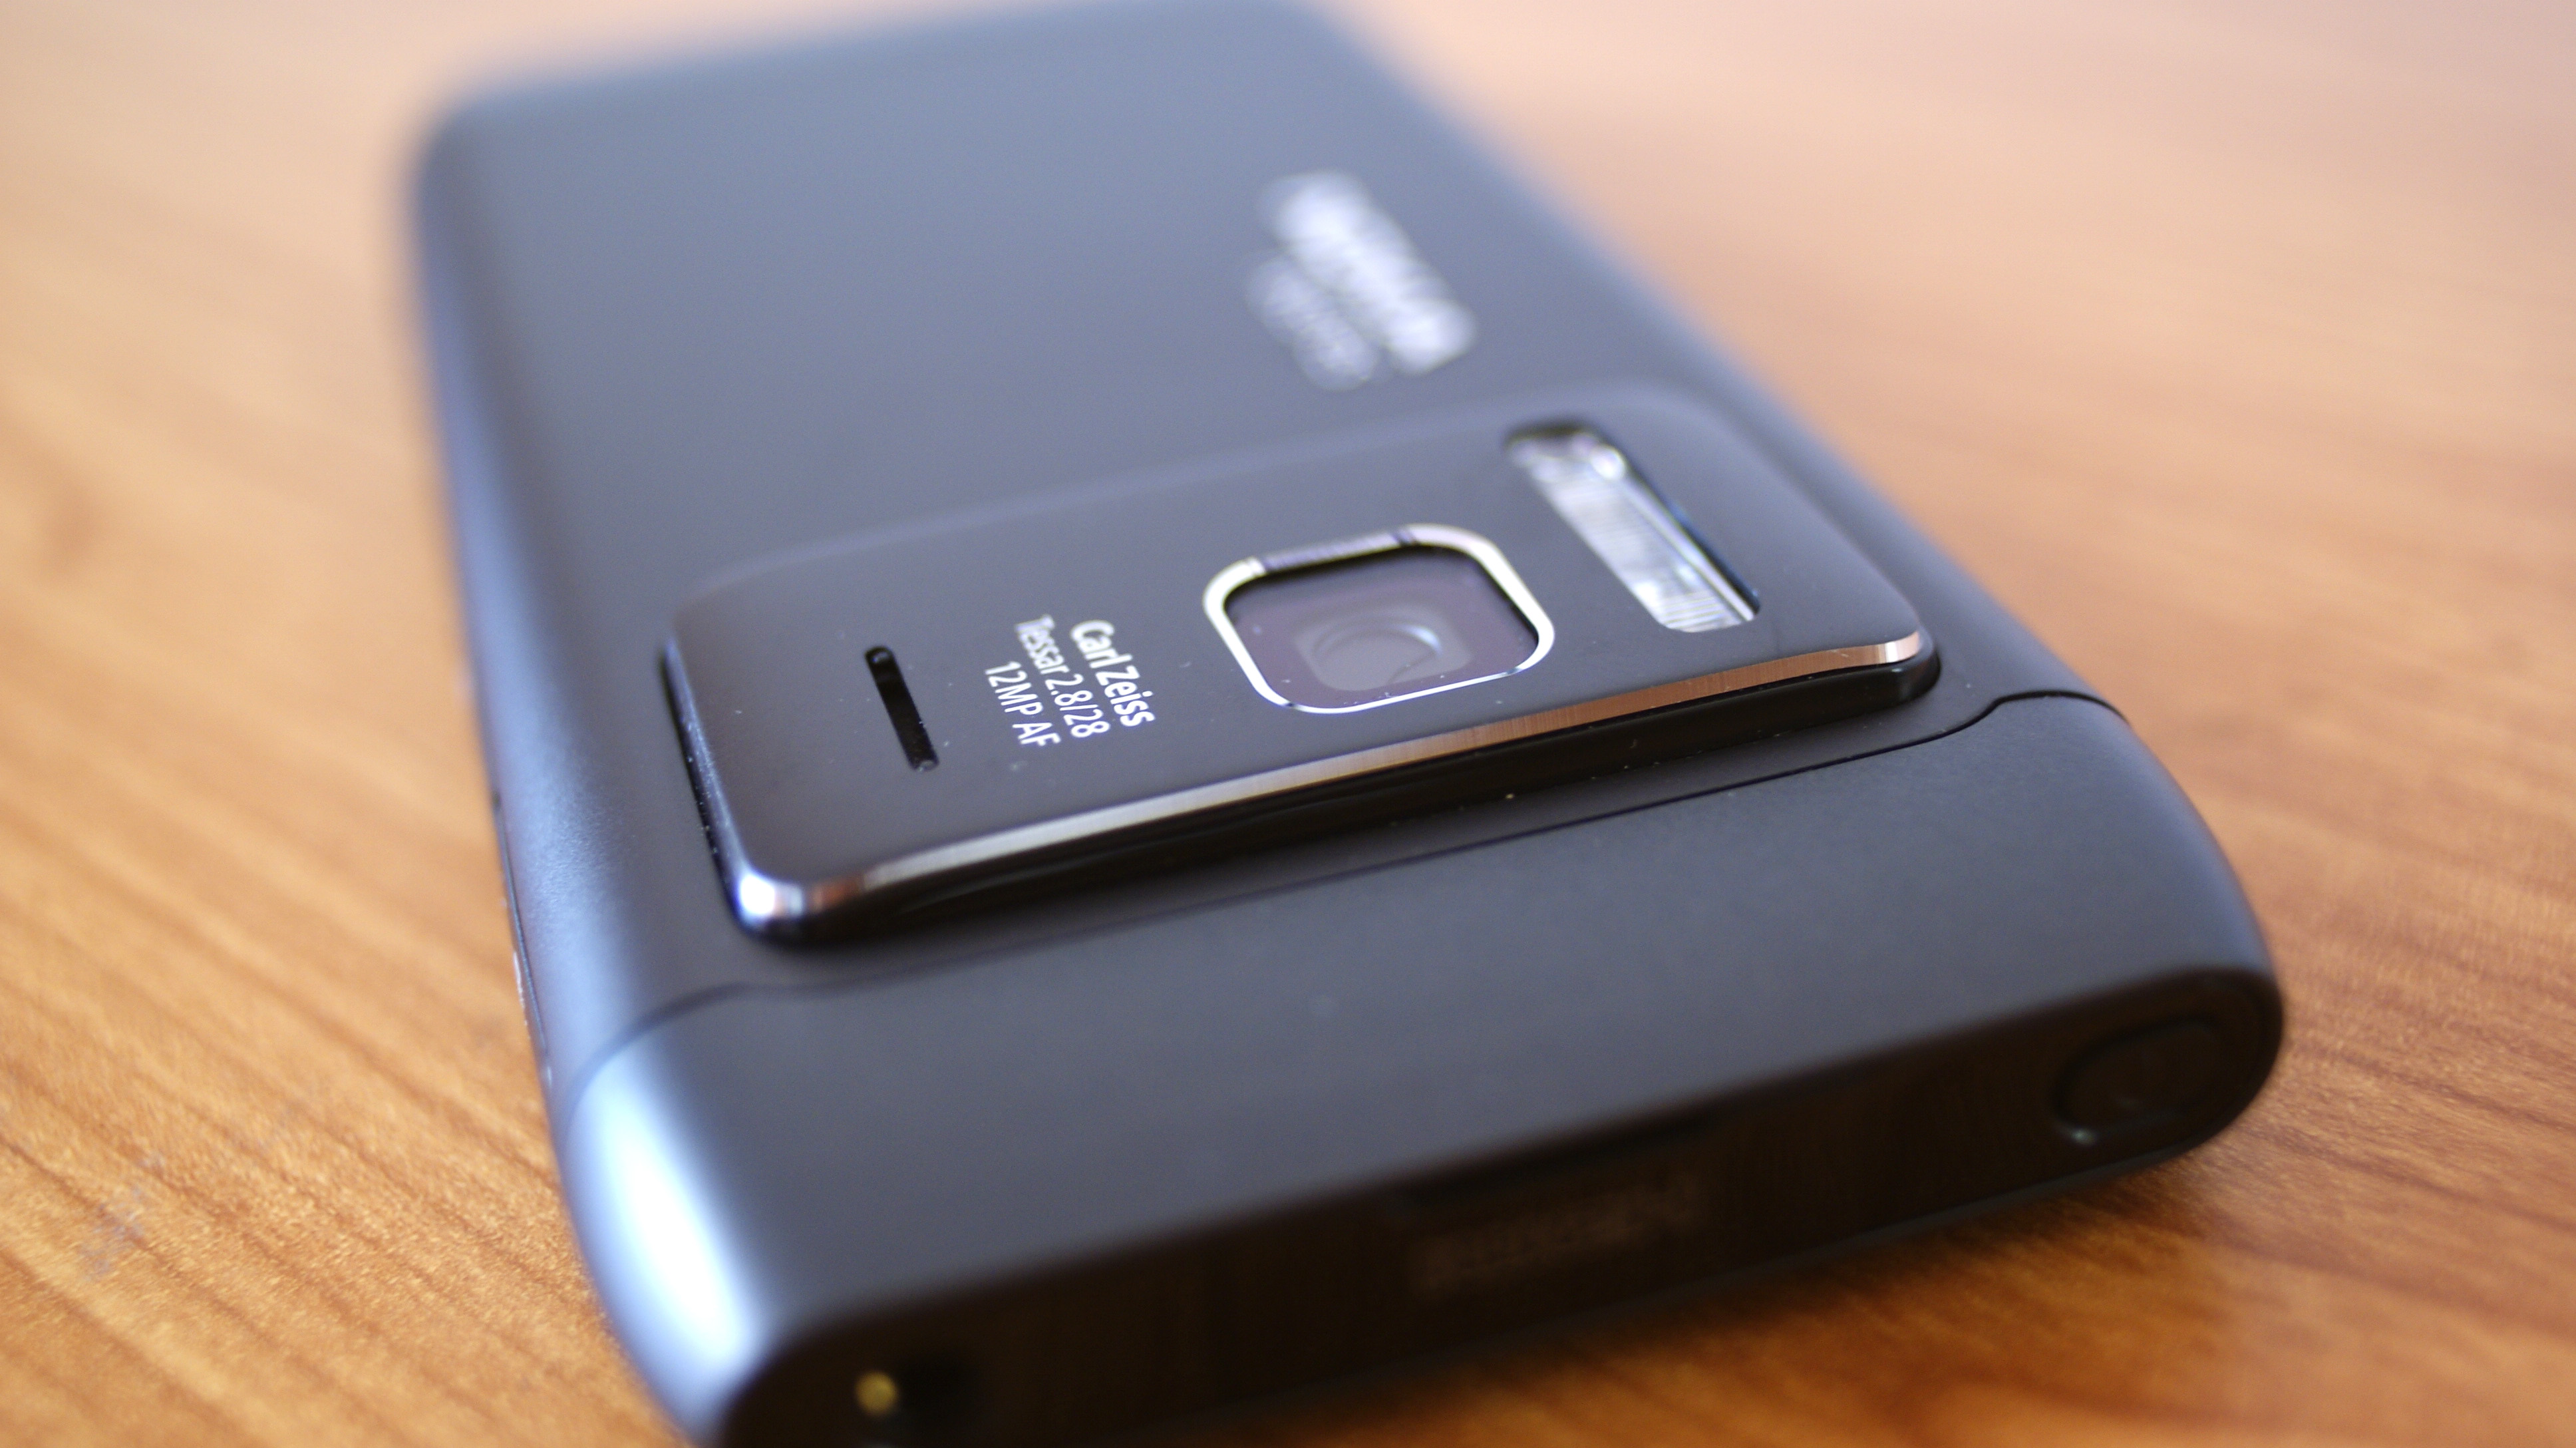 The N8's Camera - 12 MP of Awesome - Nokia N8 Review